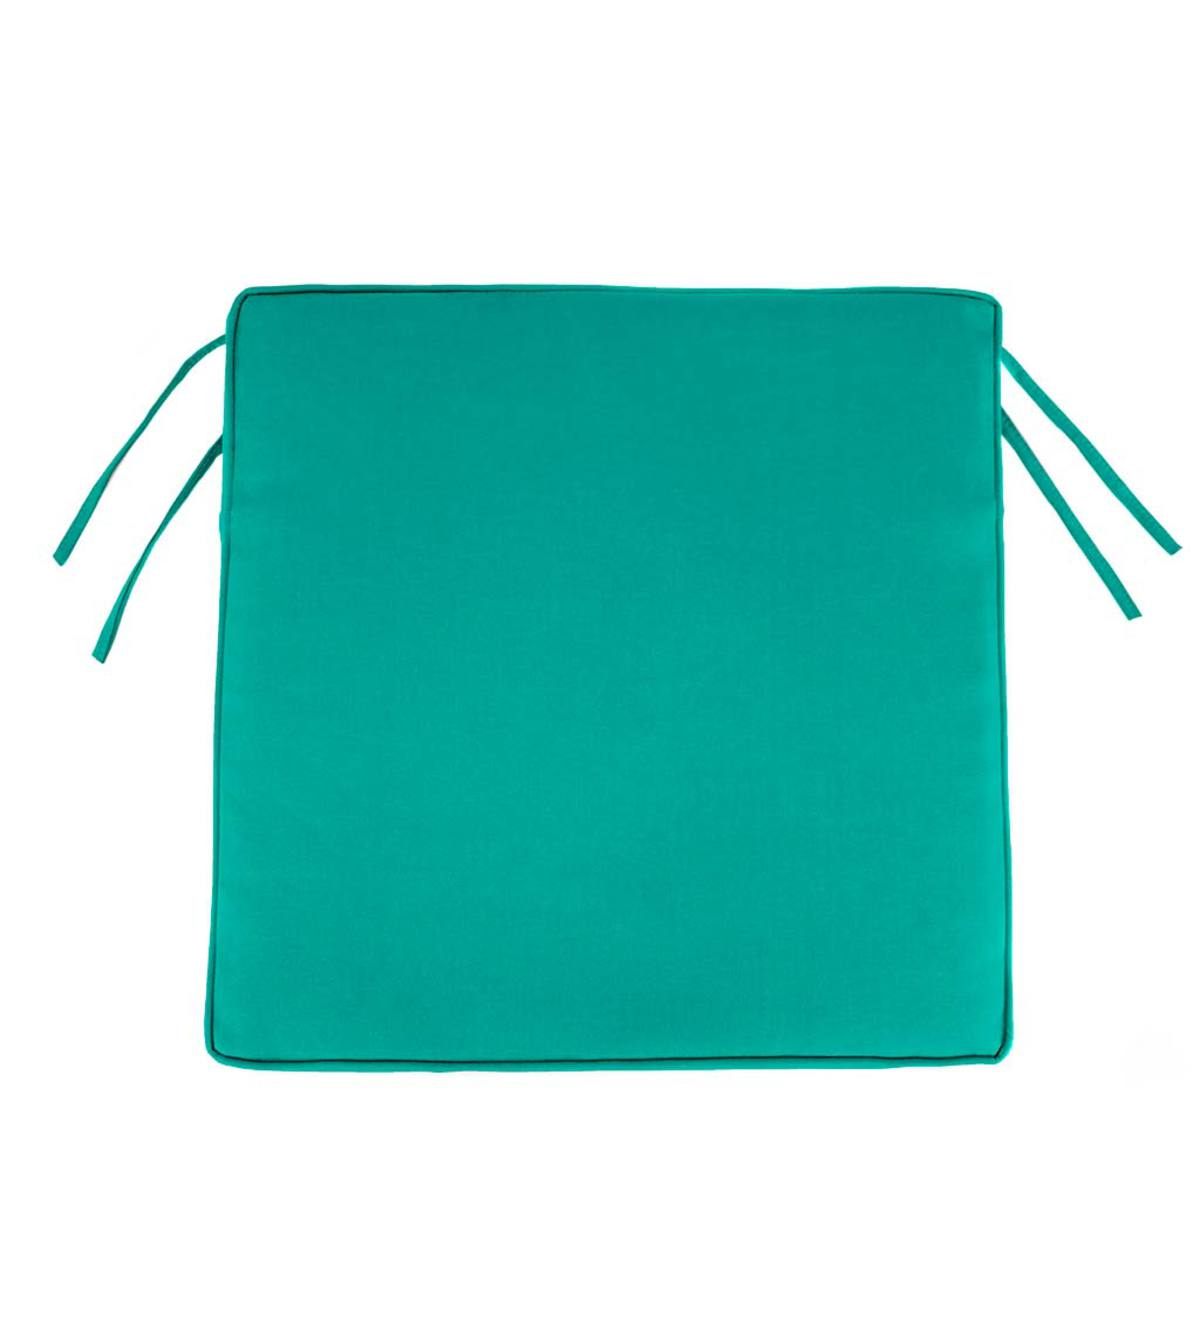 "Polyester Classic Chair Cushions With Ties, 19¾""x 17½""x 3"" - Aqua"